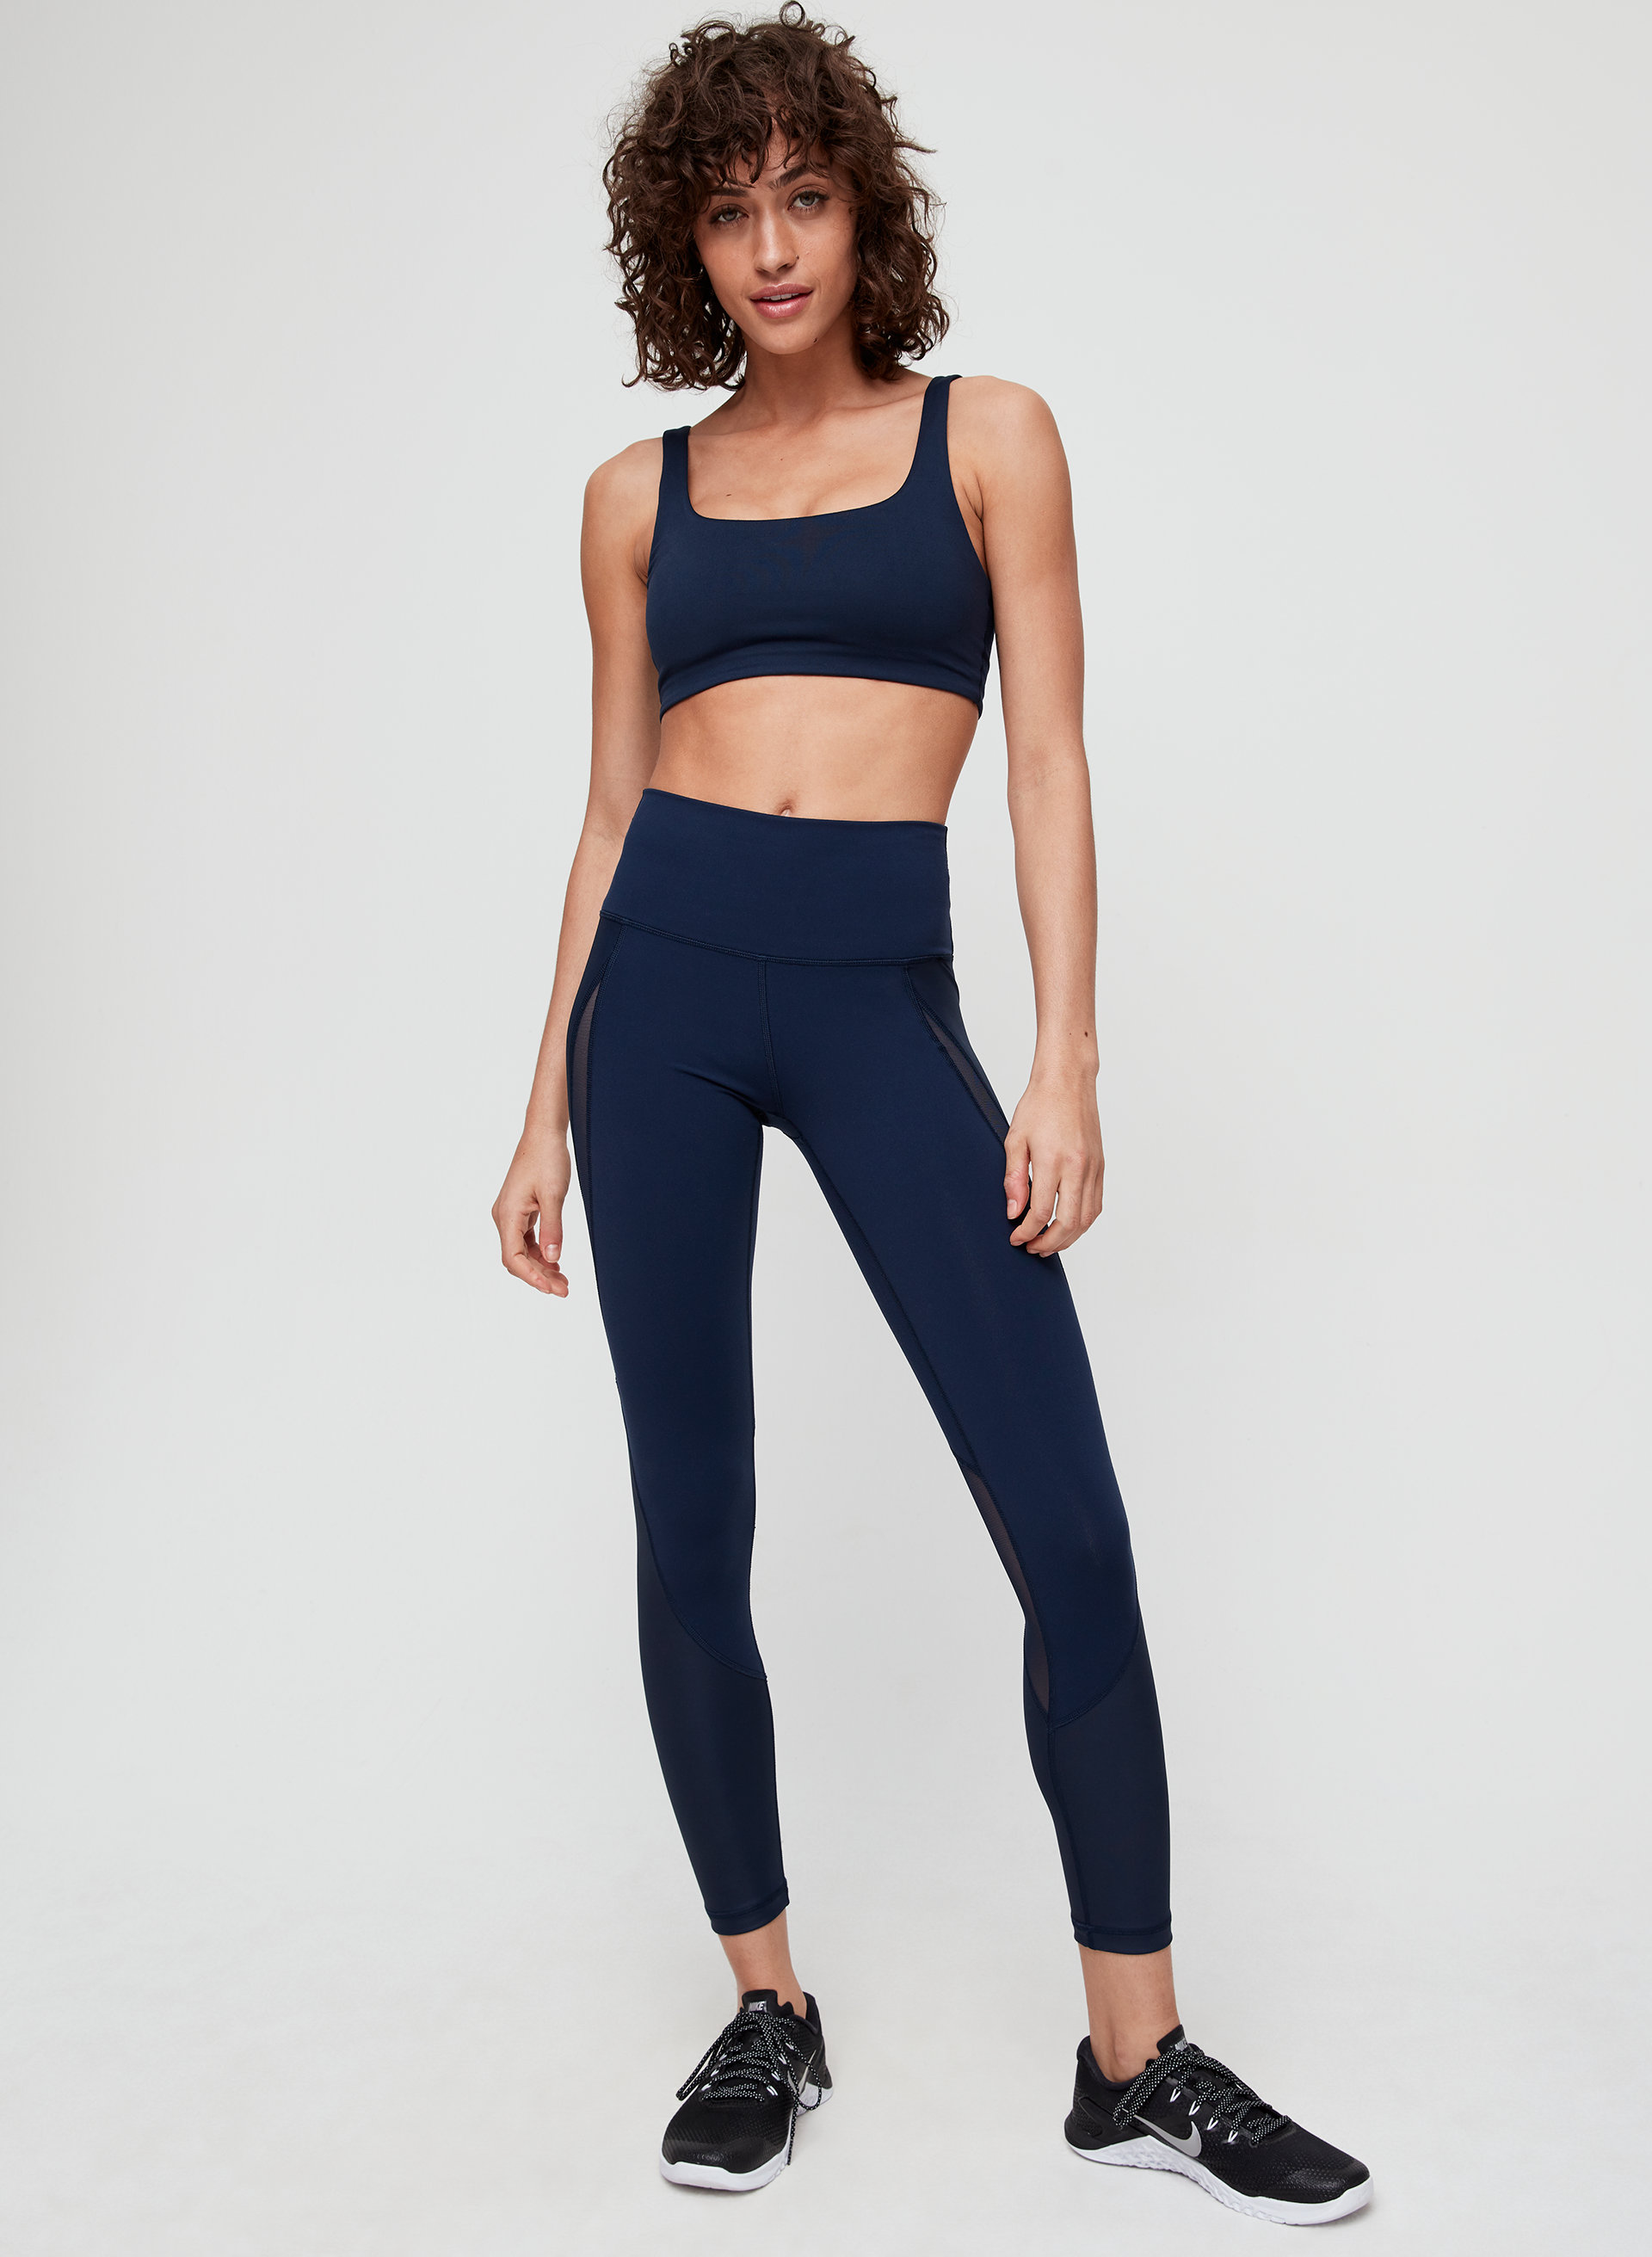 f37ba413b4041 RELAY SQUAD PANT - High-waisted, mesh workout legging